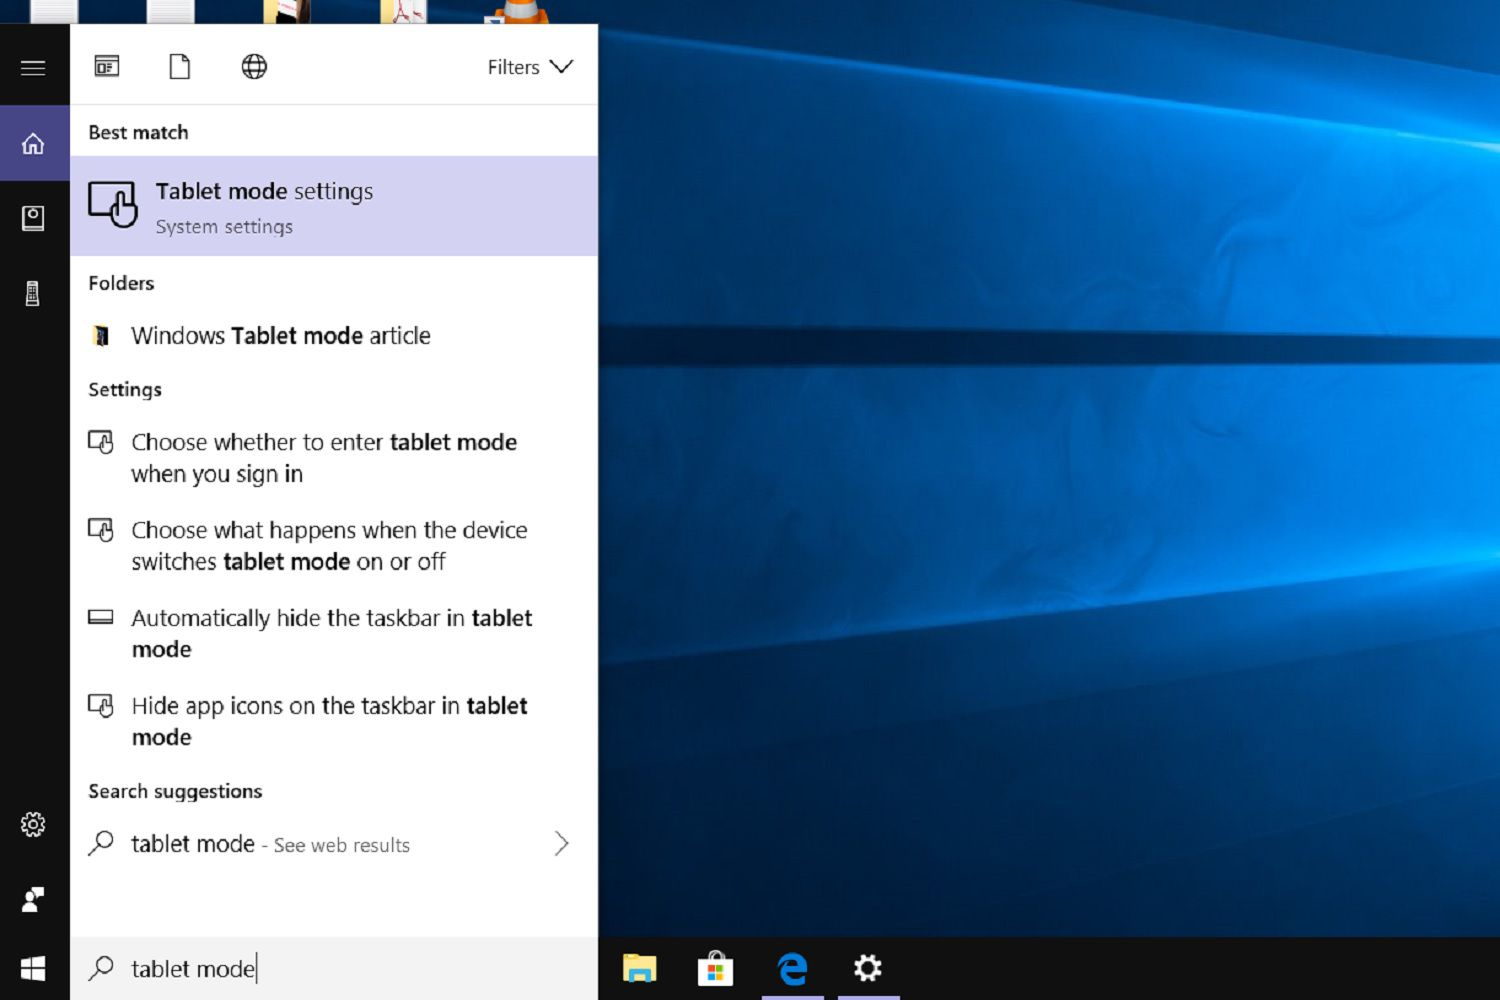 A screenshot showing how to use the Search bar method to access Tablet mode settings in Windows 10.